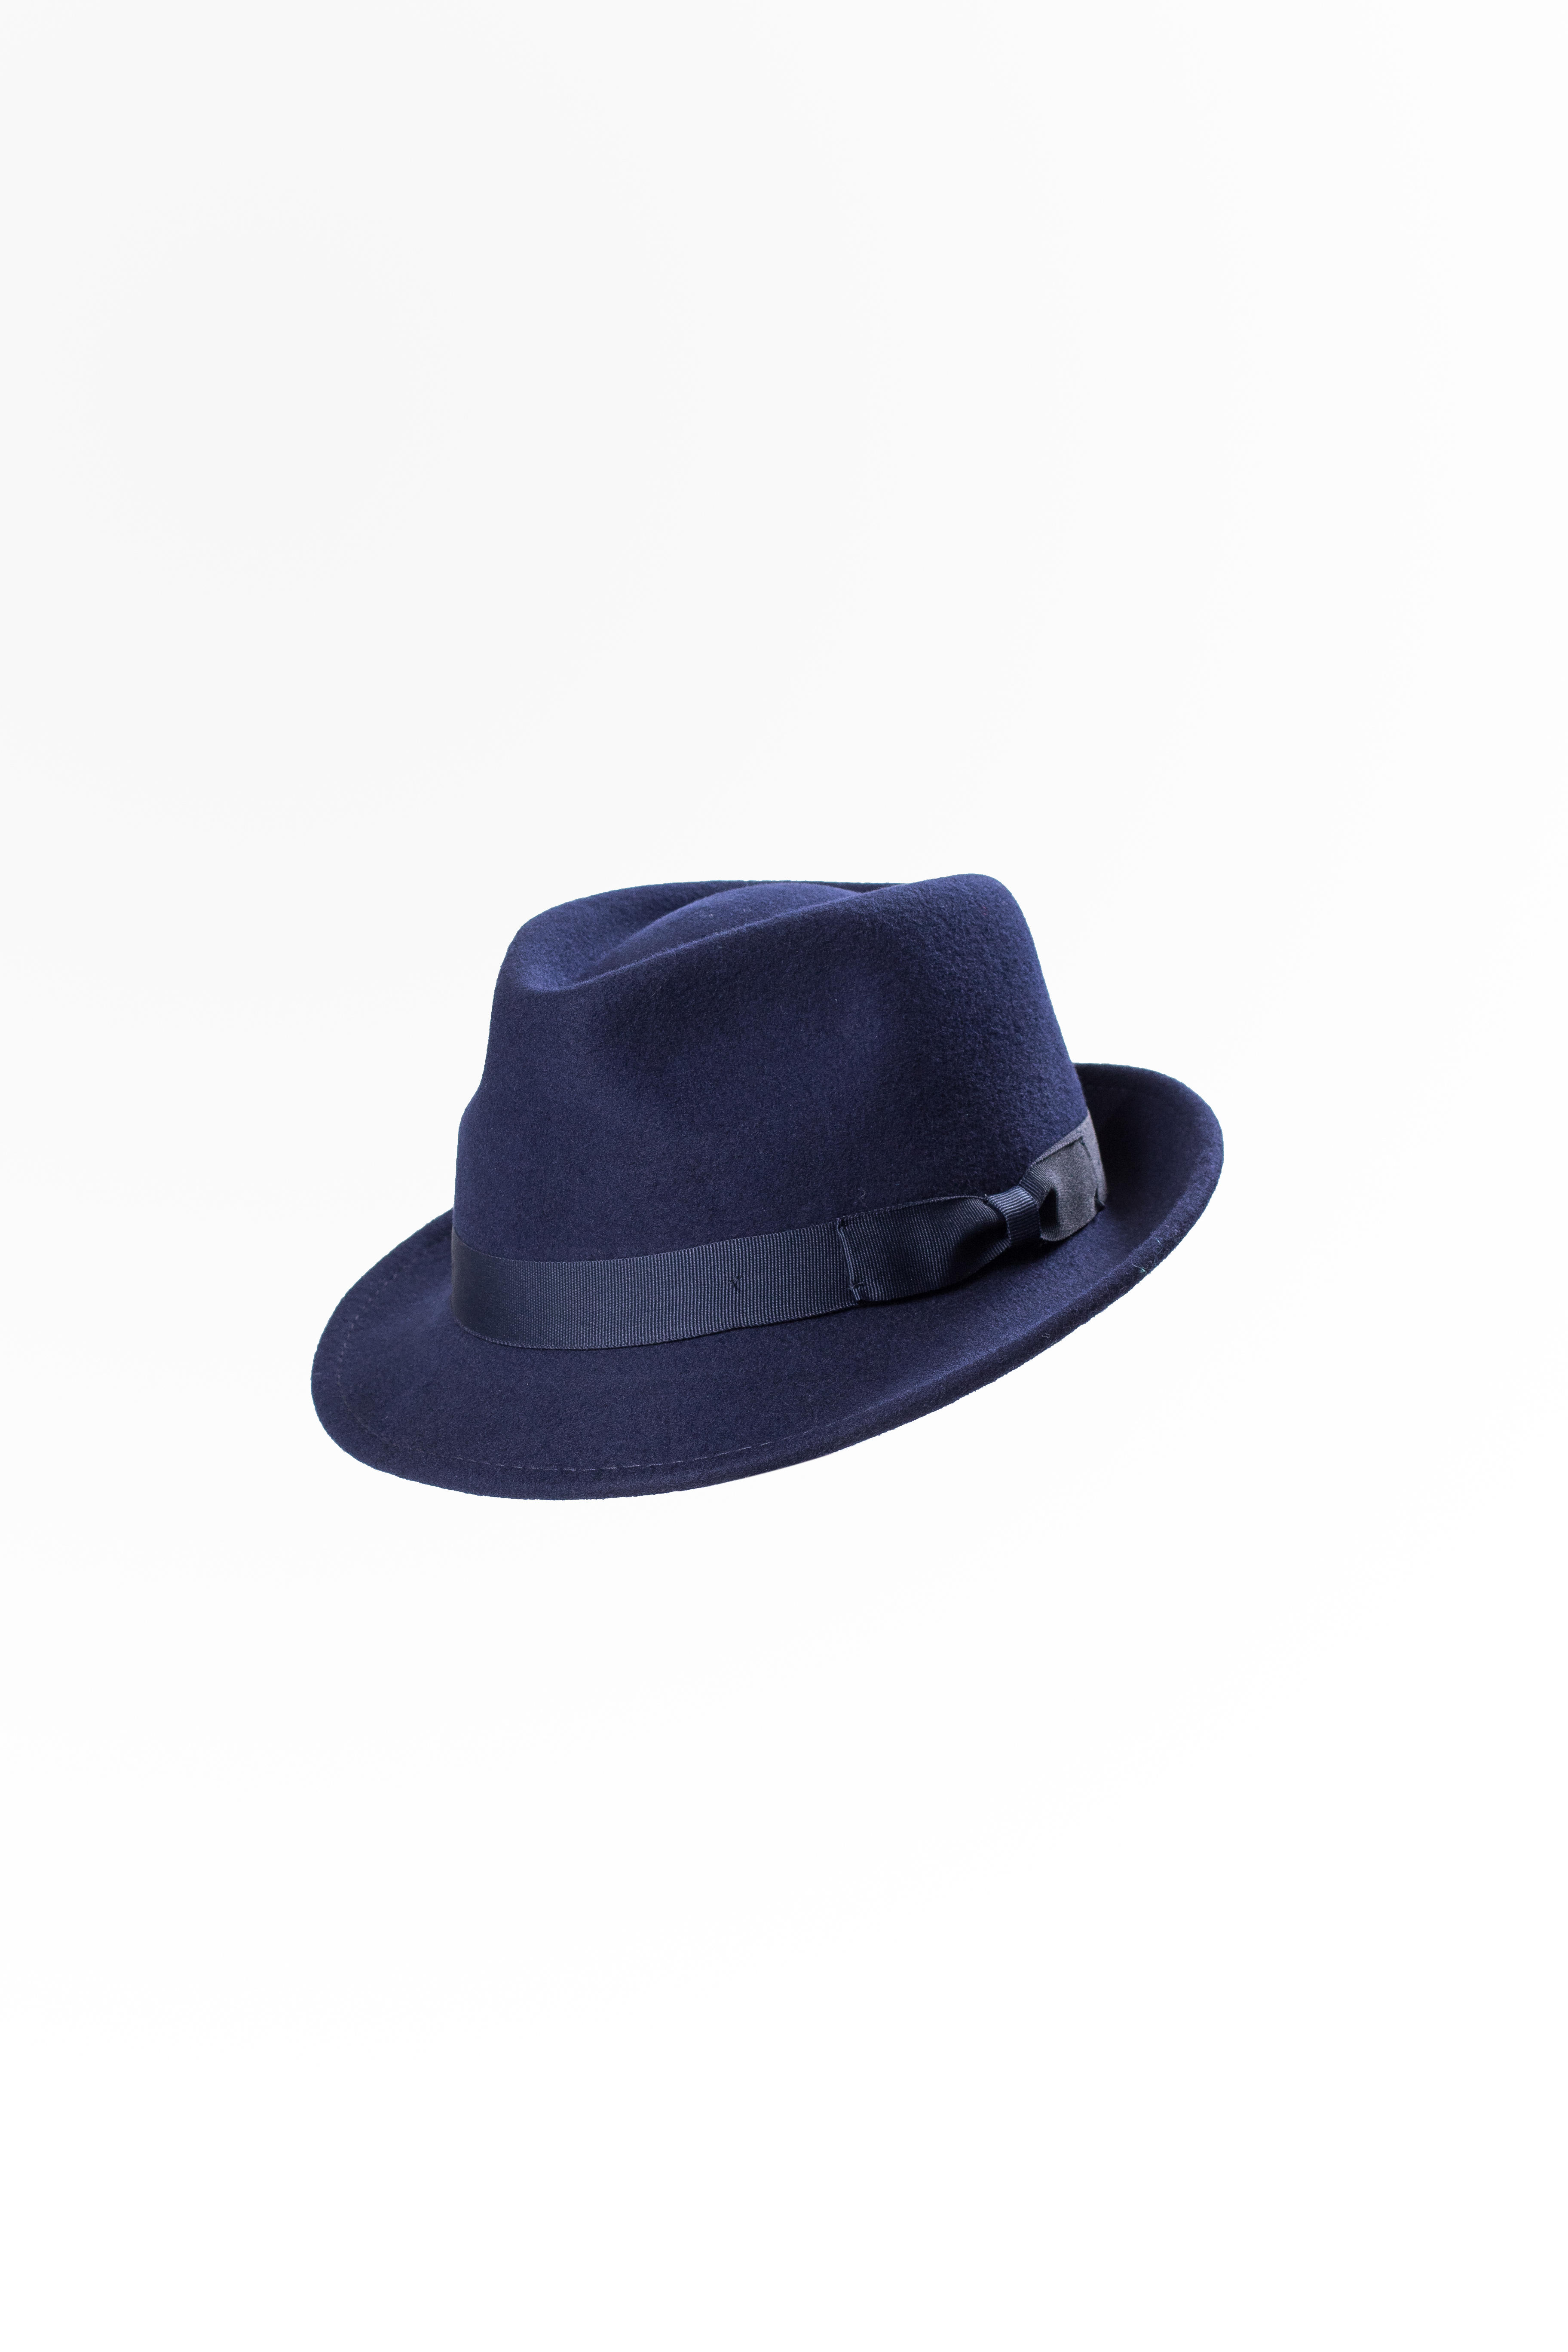 Wool Felt Trilby Hat Navy